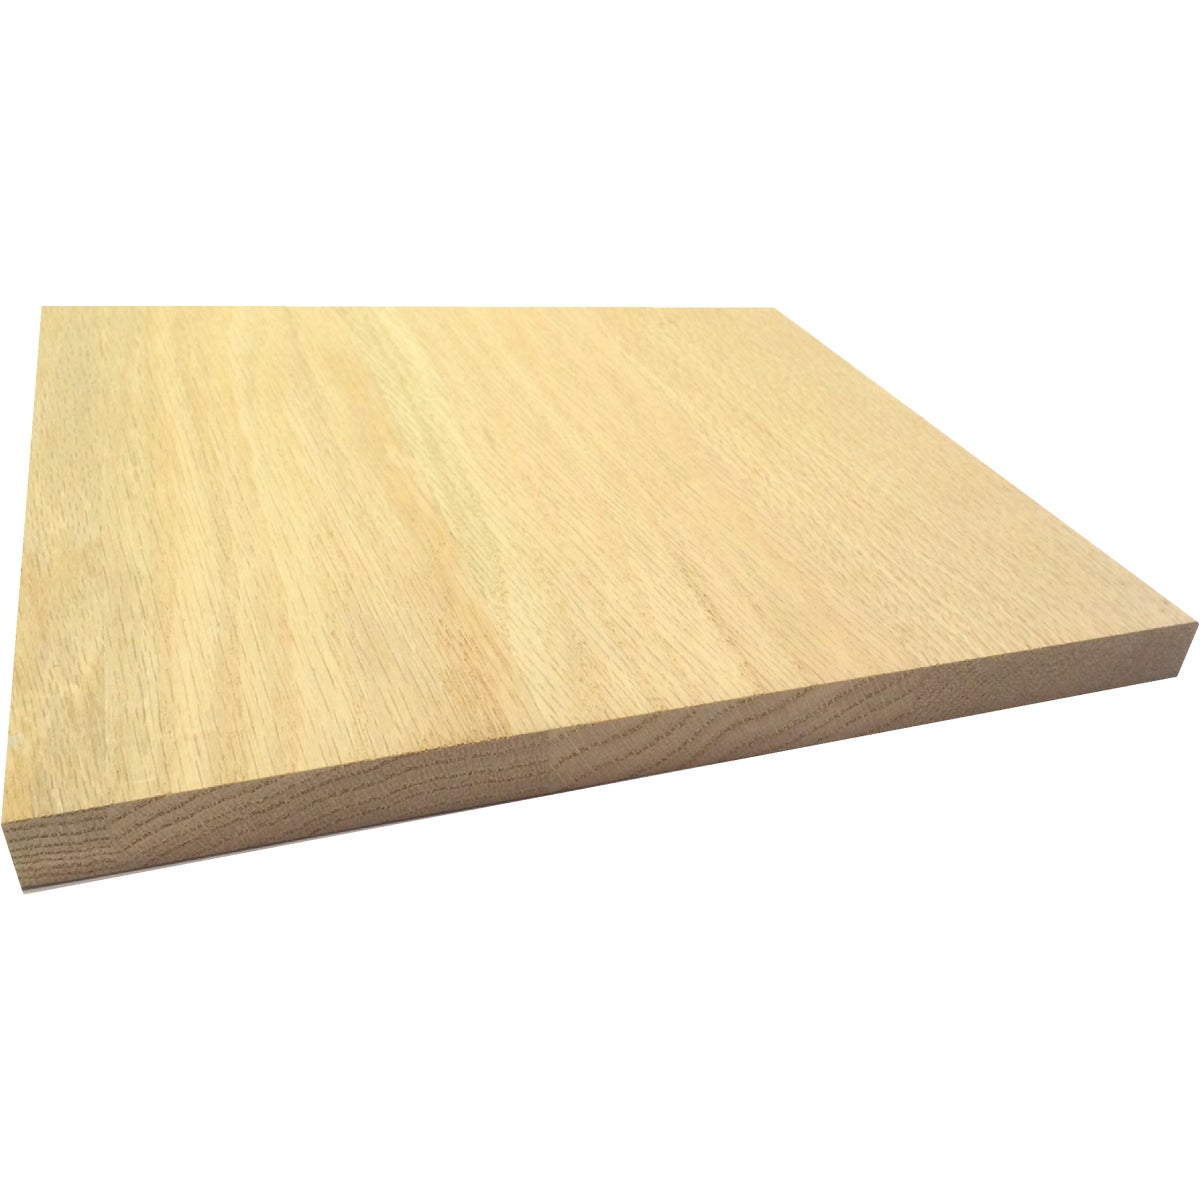 "1X12""X4' OAK BOARD - PB19545 by Waddell Mfg Company"